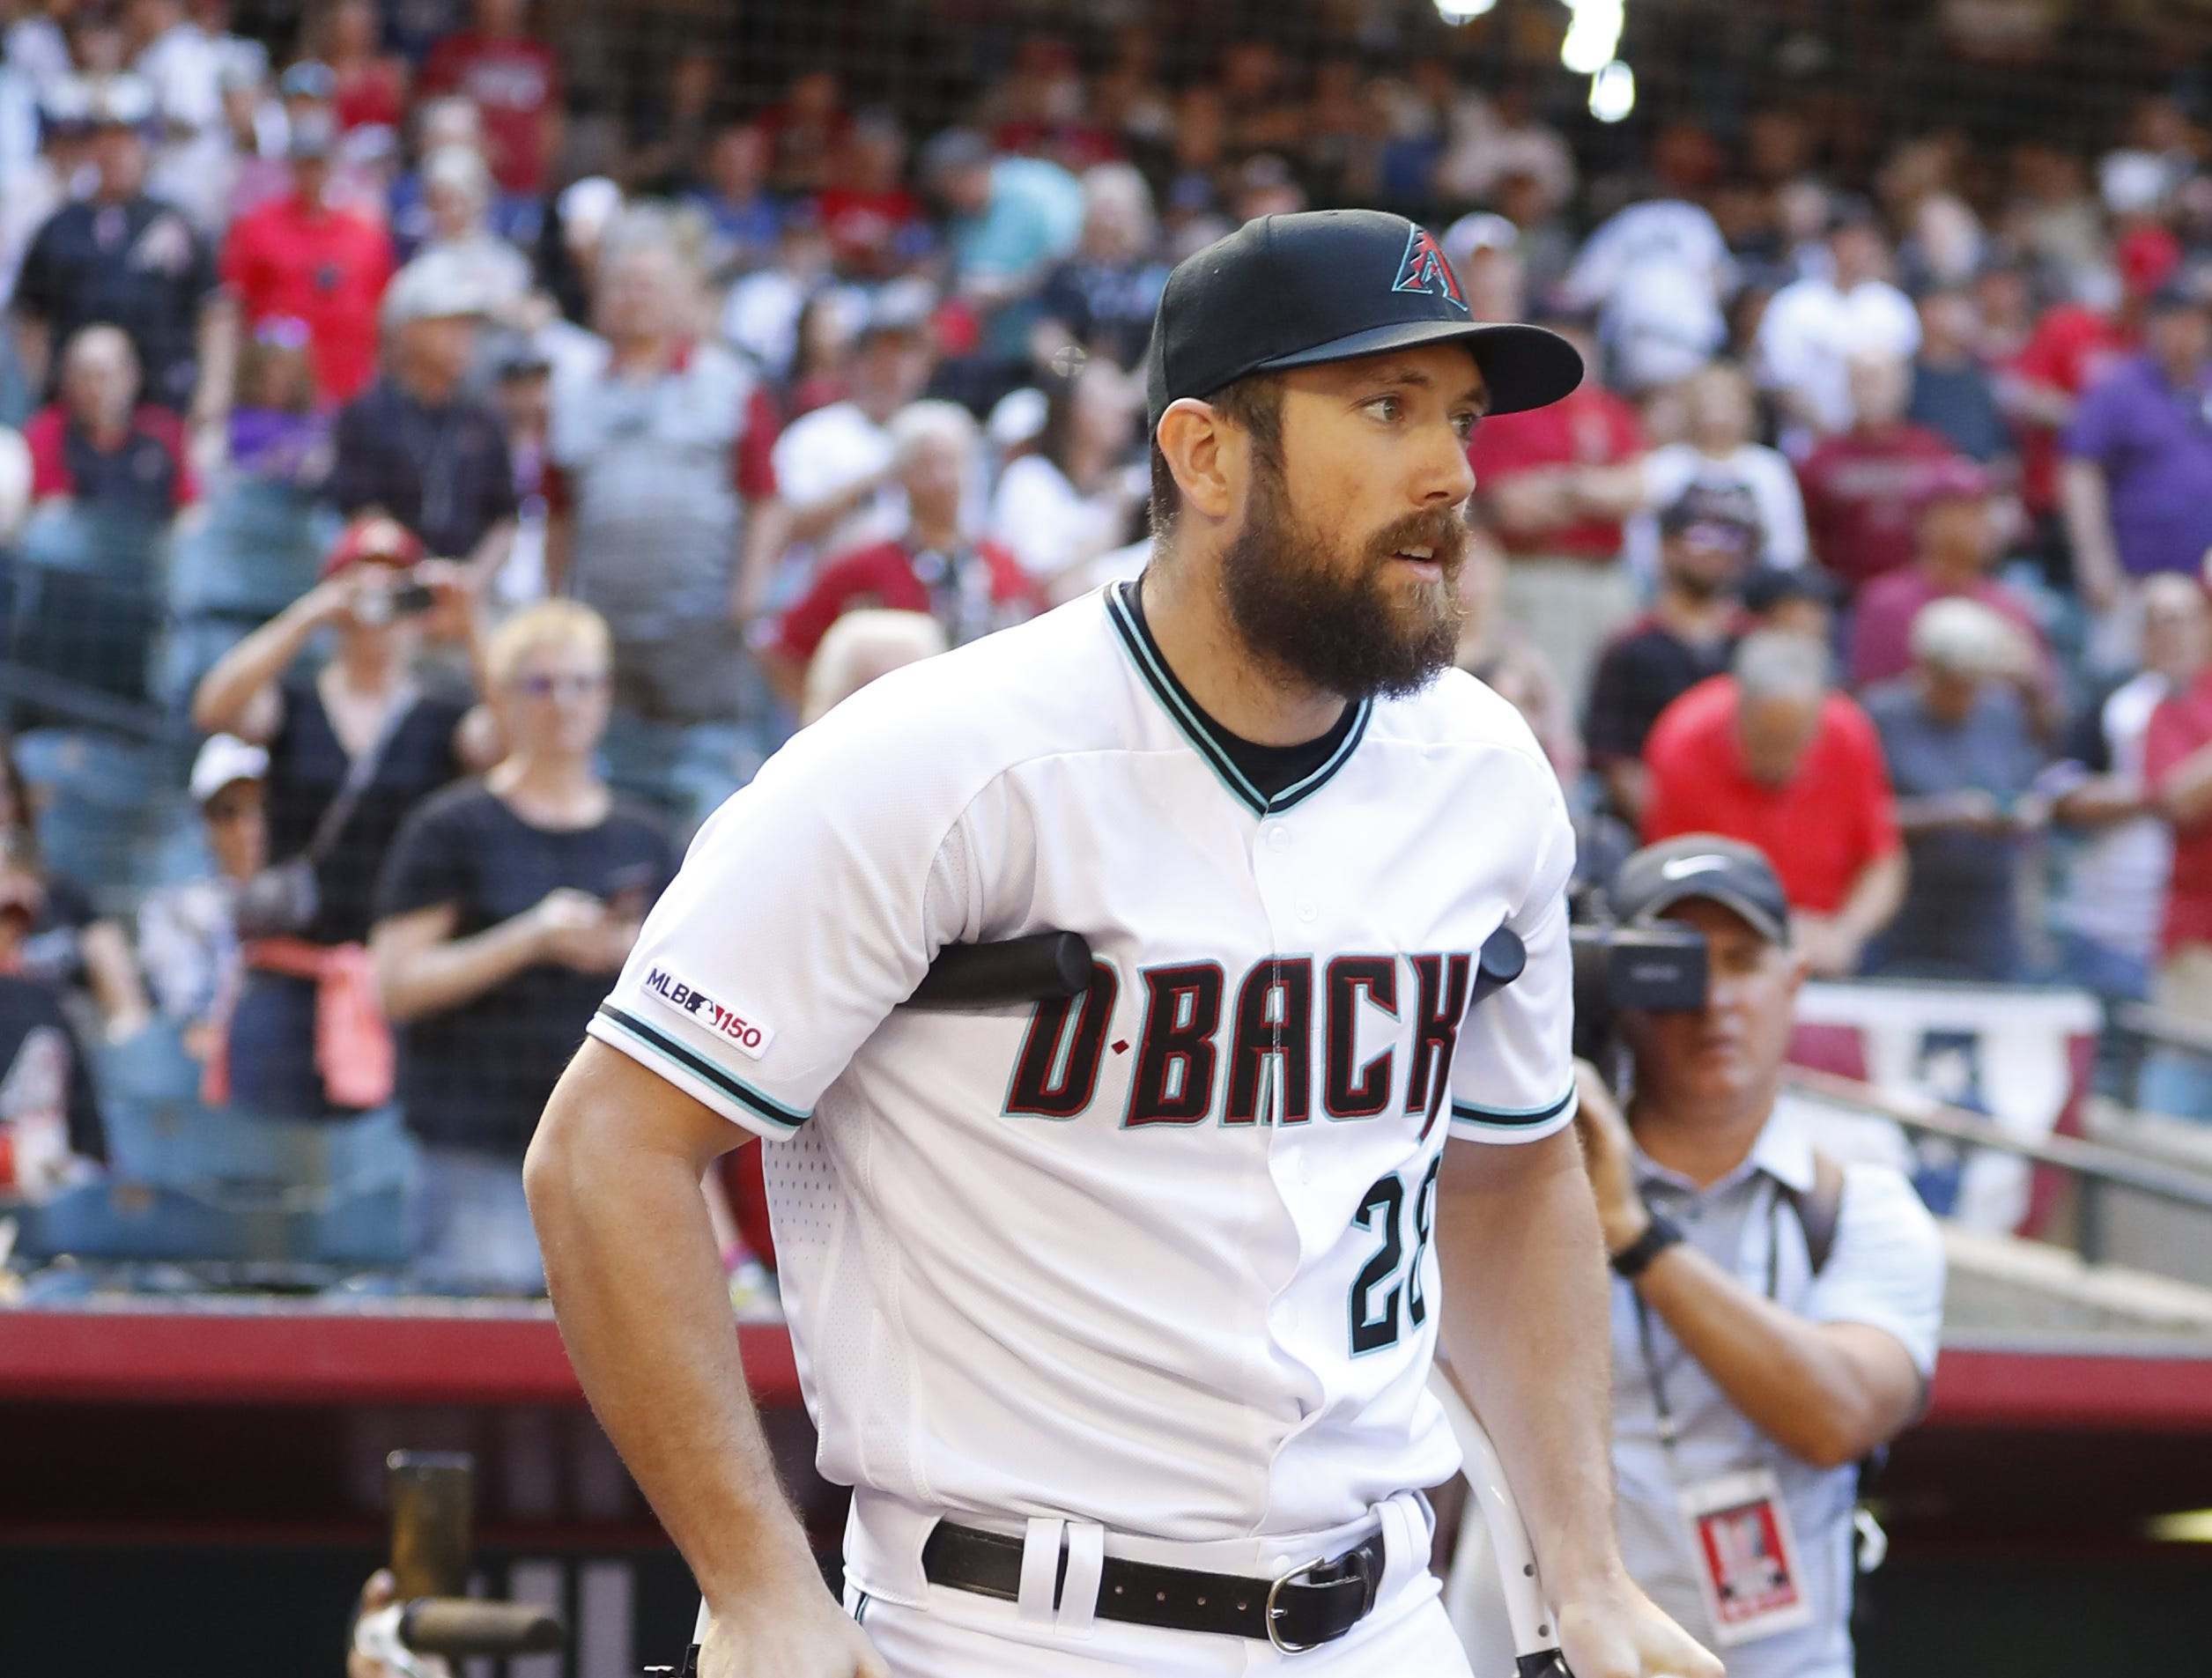 Diamondbacks Steven Souza Jr. uses crutches to make his way out of the dugout before the Diamondbacks vs. Red Sox game at Chase Field on the Opening Day for the Diamondbacks in Phoenix, Ariz. on April 5, 2019.